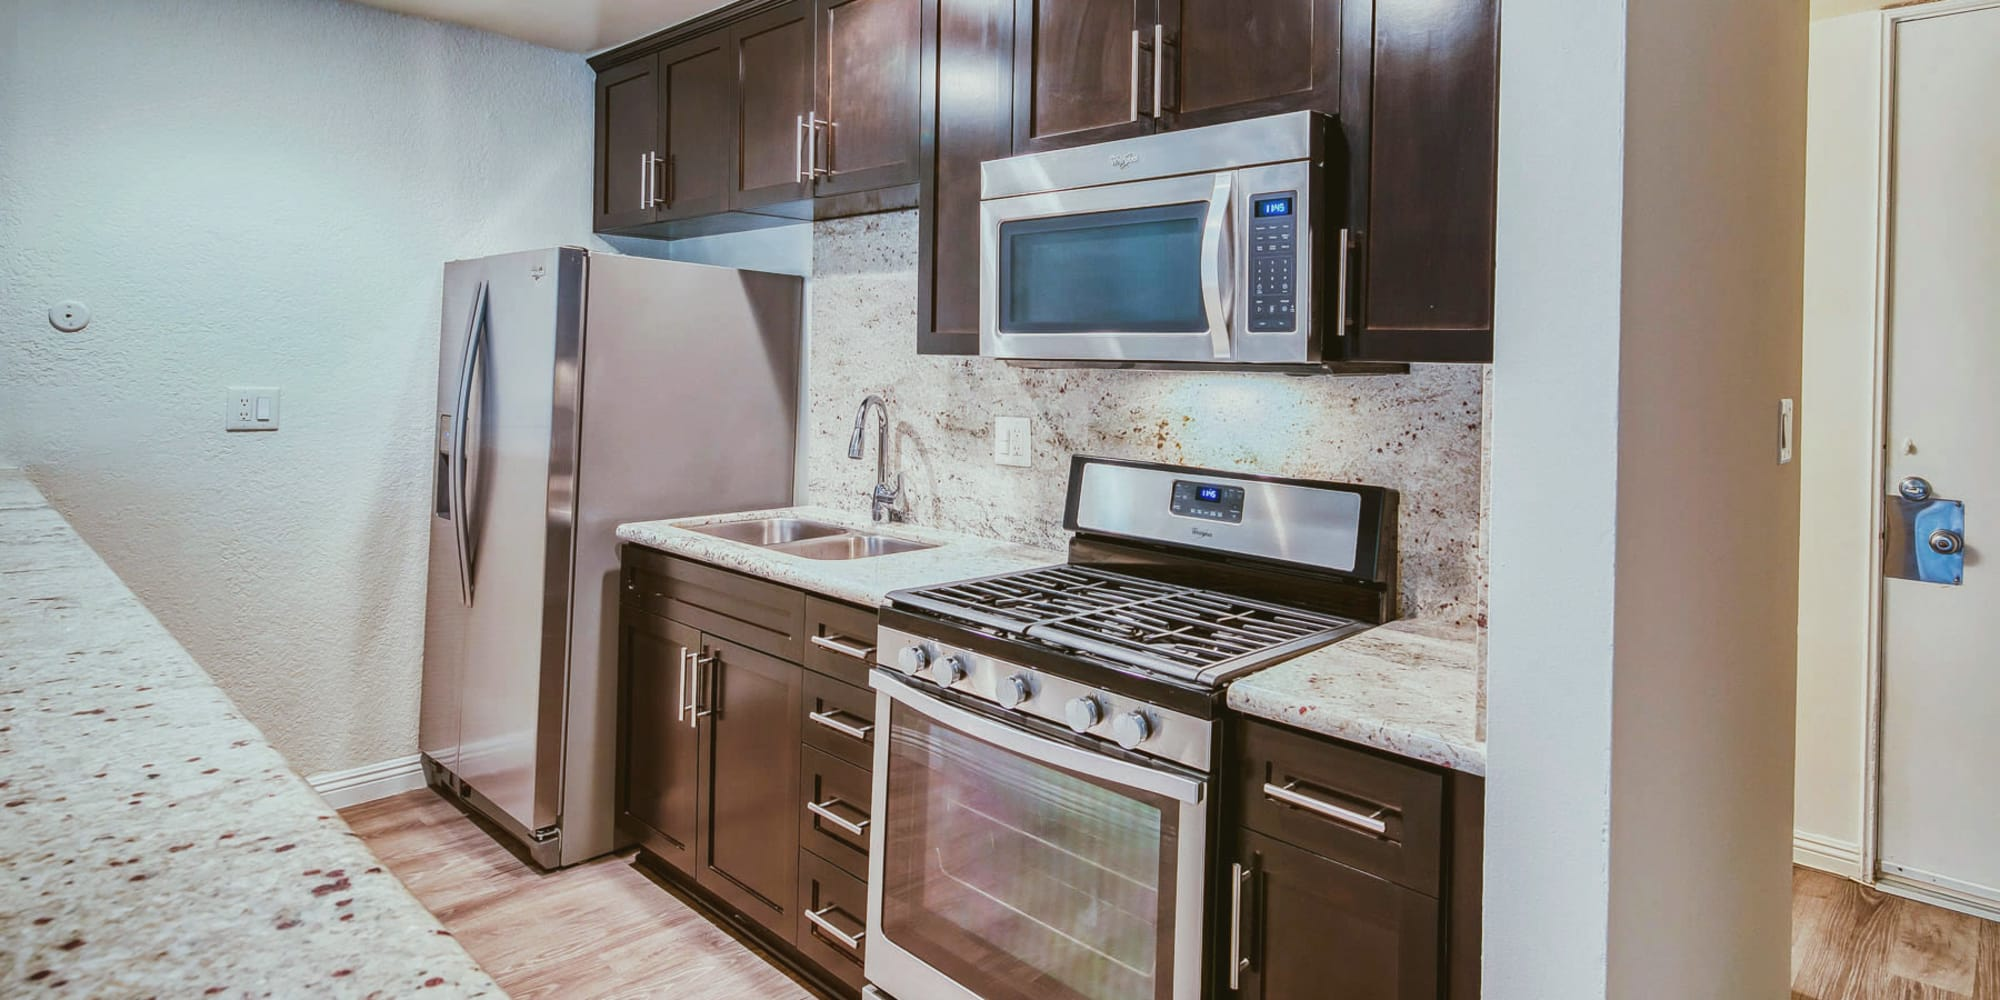 Hardwood flooring and stainless-steel appliances in a model apartment's kitchen at Mediterranean Village in West Hollywood, California